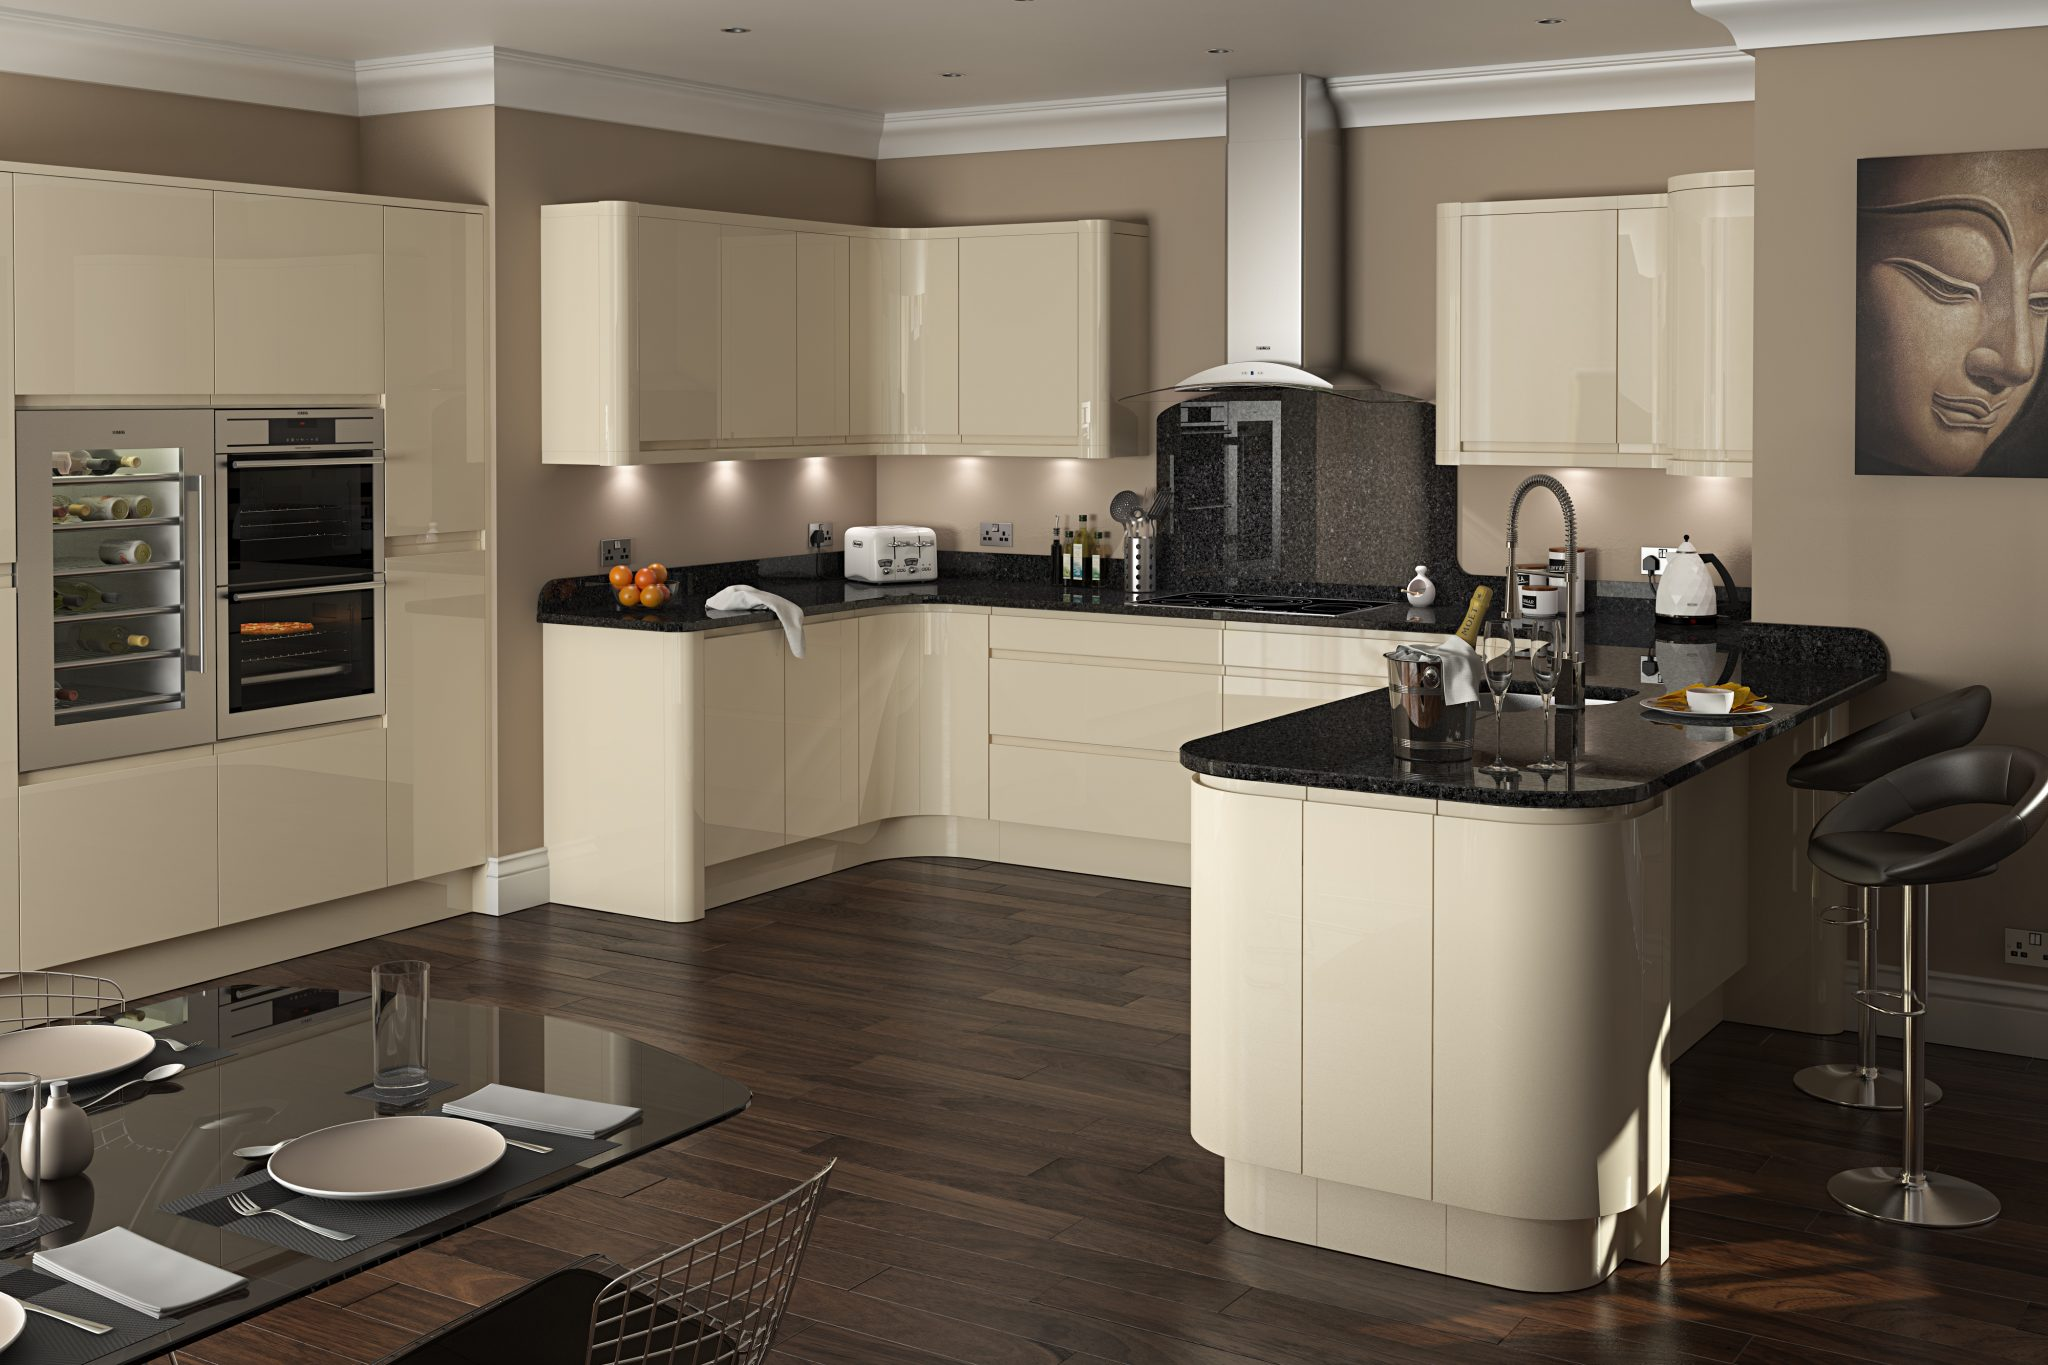 Kitchen design kitchens wirral bespoke luxury designs for See kitchen designs